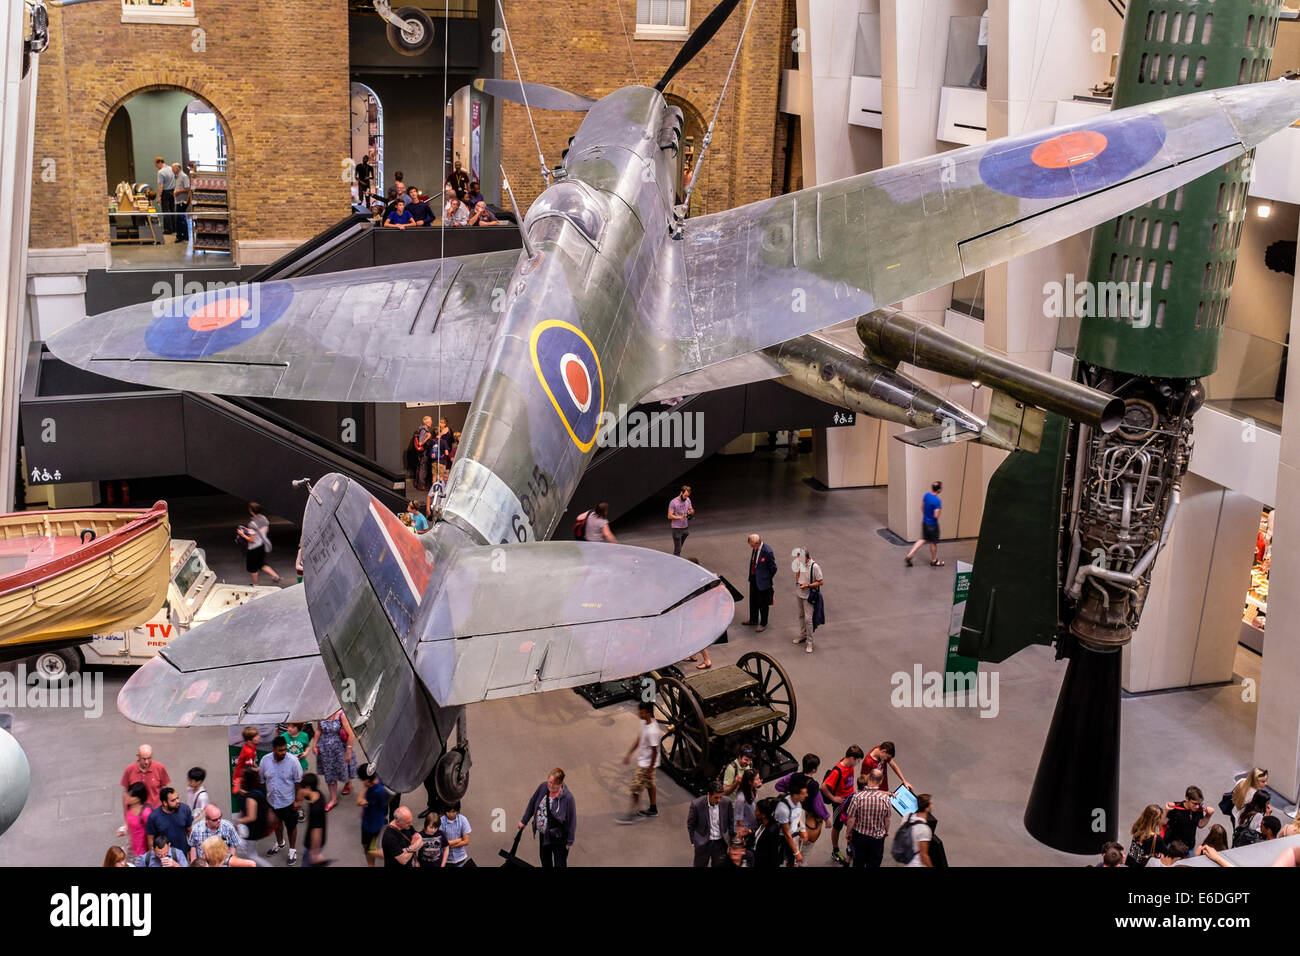 World War II Spitfire on display at Imperial War Museum, London UK - Stock Image